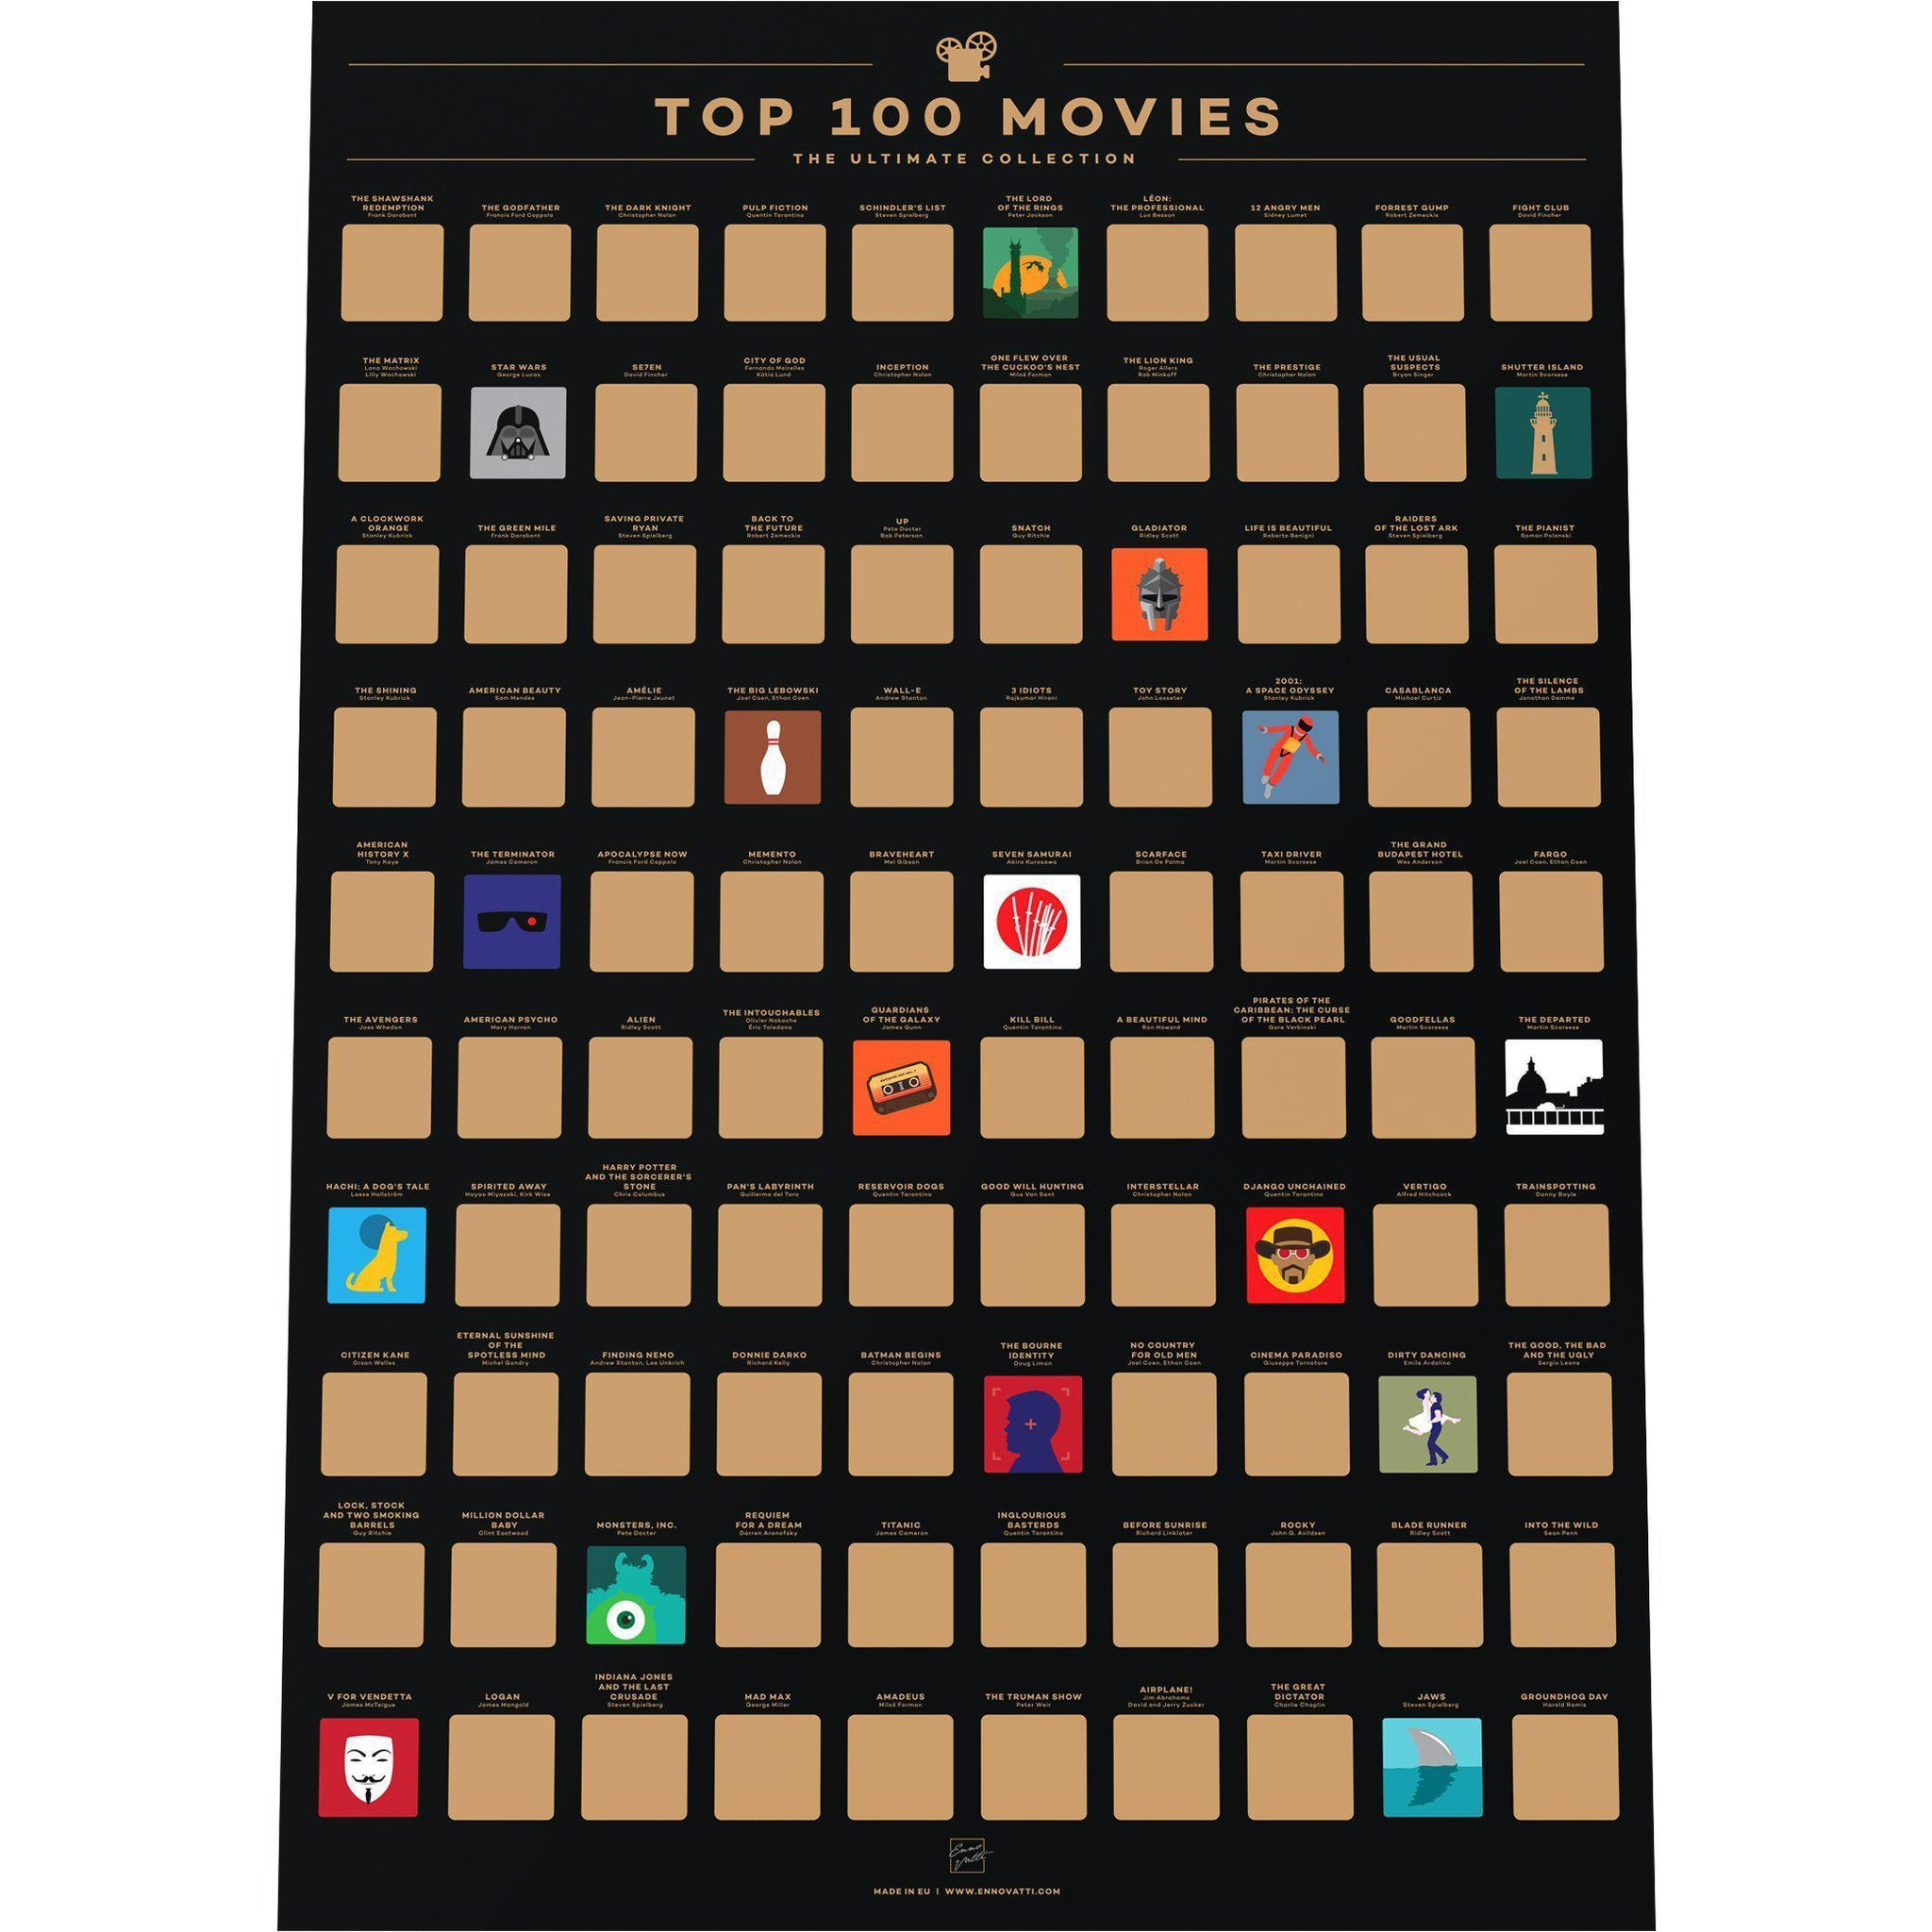 Top 100 Movies Bucket List Poster-Enno Vatti